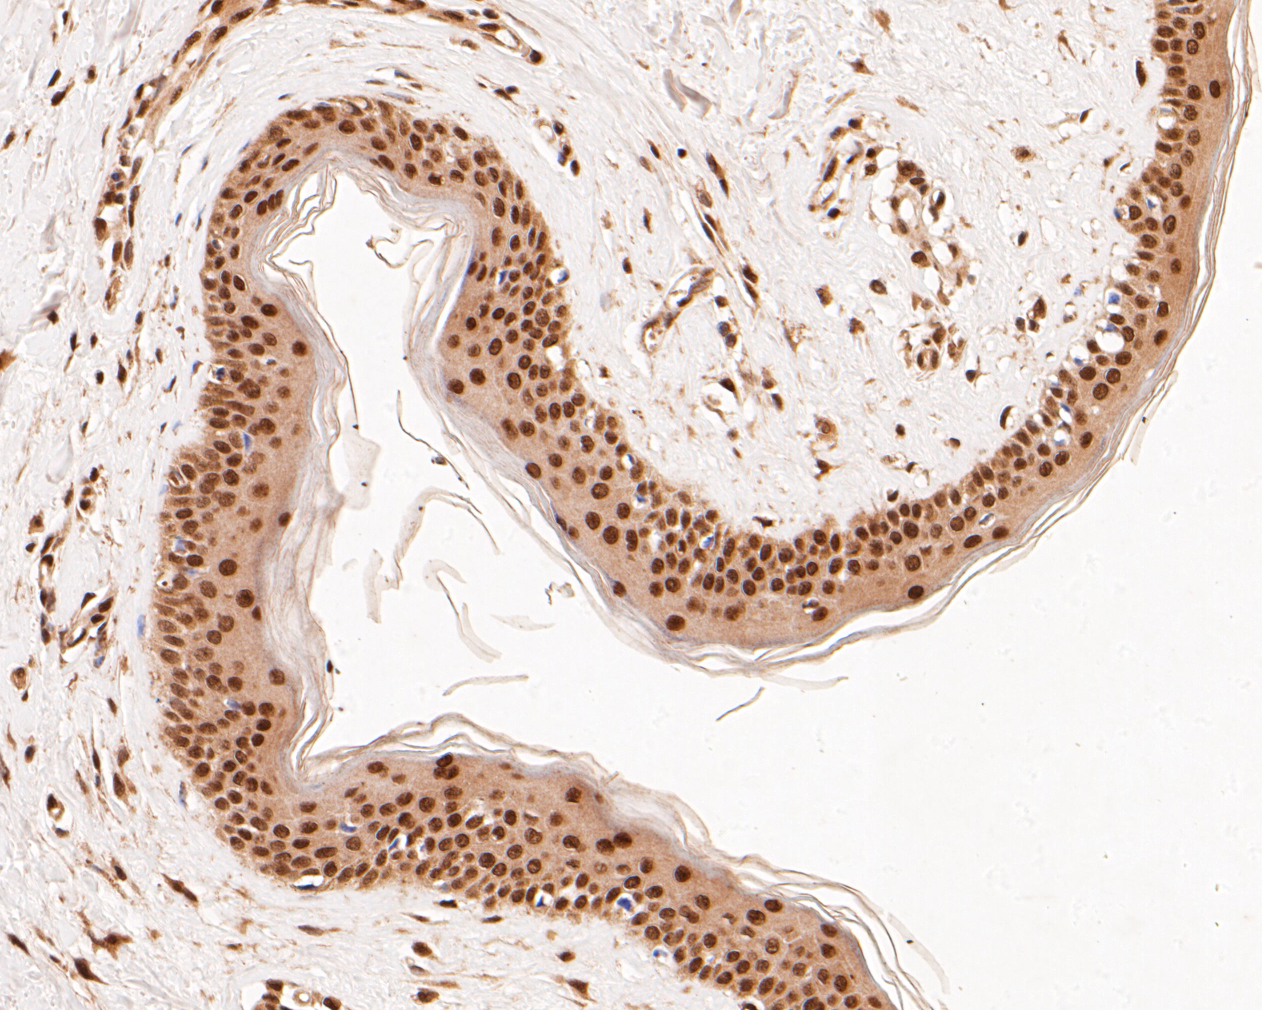 Immunohistochemical analysis of paraffin-embedded human skin tissue using anti-PTEN antibody. The section was pre-treated using heat mediated antigen retrieval with Tris-EDTA buffer (pH 8.0-8.4) for 20 minutes.The tissues were blocked in 5% BSA for 30 minutes at room temperature, washed with ddH2O and PBS, and then probed with the primary antibody (ER1902-27, 1/200) for 30 minutes at room temperature. The detection was performed using an HRP conjugated compact polymer system. DAB was used as the chromogen. Tissues were counterstained with hematoxylin and mounted with DPX.